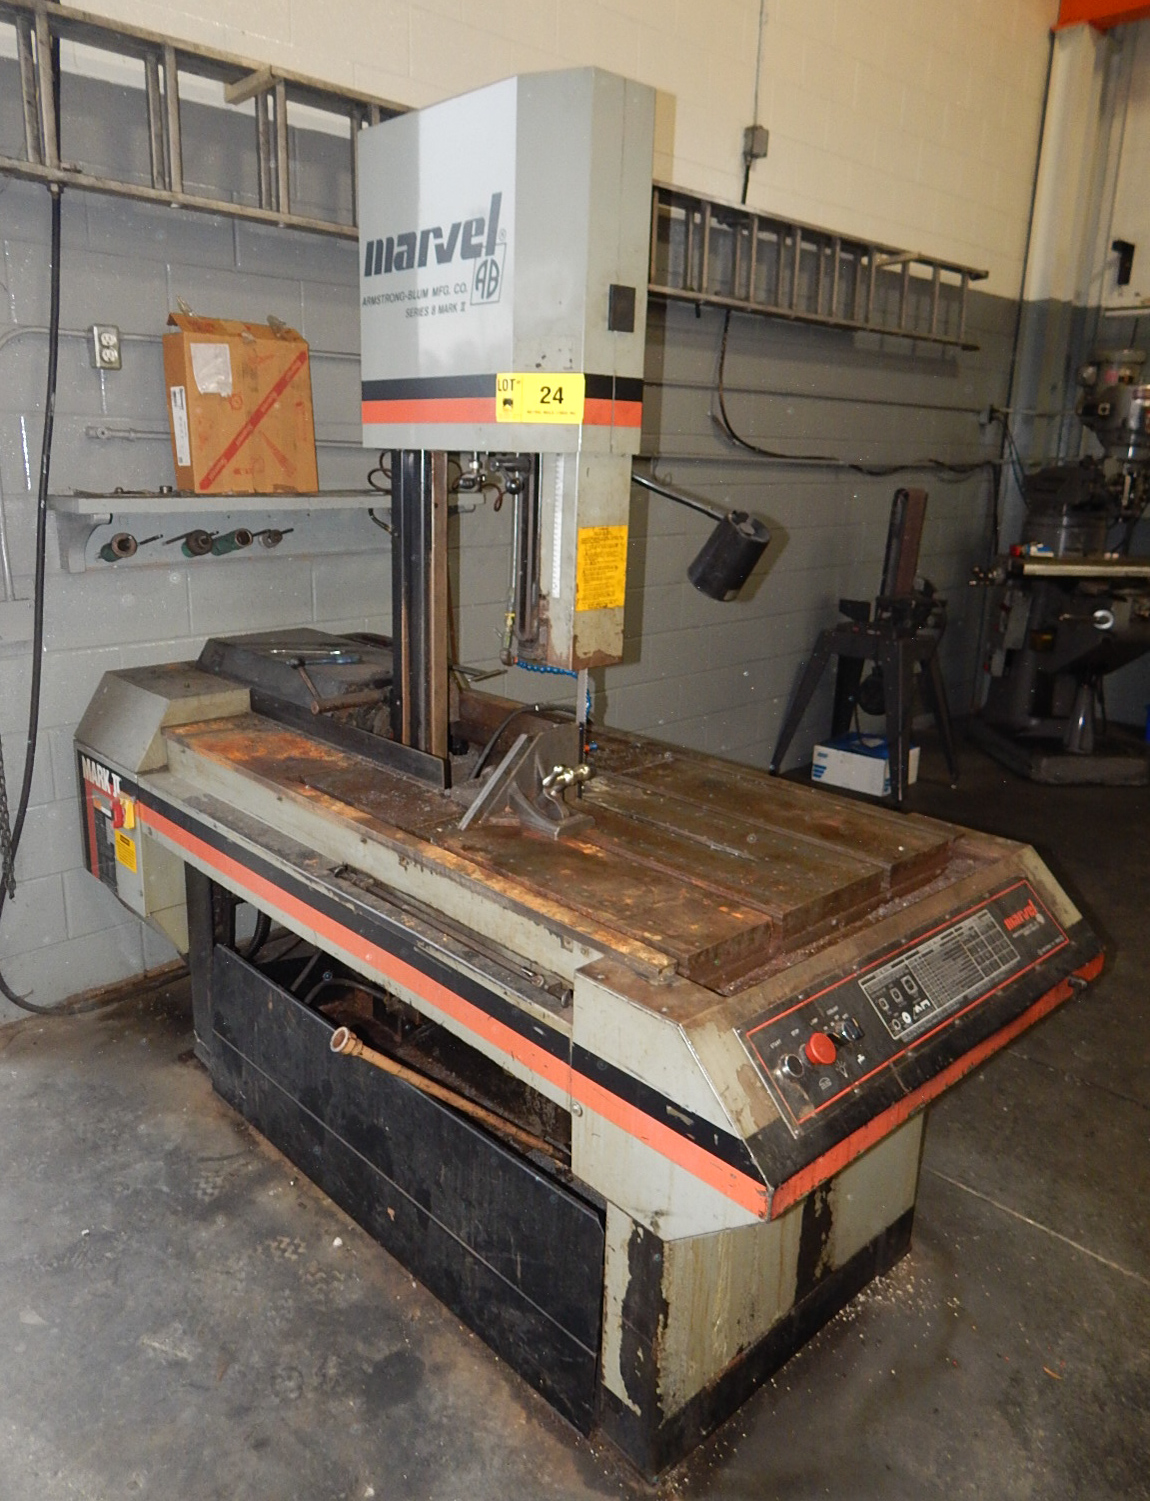 """Lot 24 - MARVEL SERIES 8 MARK II HEAVY DUTY METAL CUTTING VERTICAL BAND SAW WITH 18"""" THROAT, 20"""" MAX. WORK"""